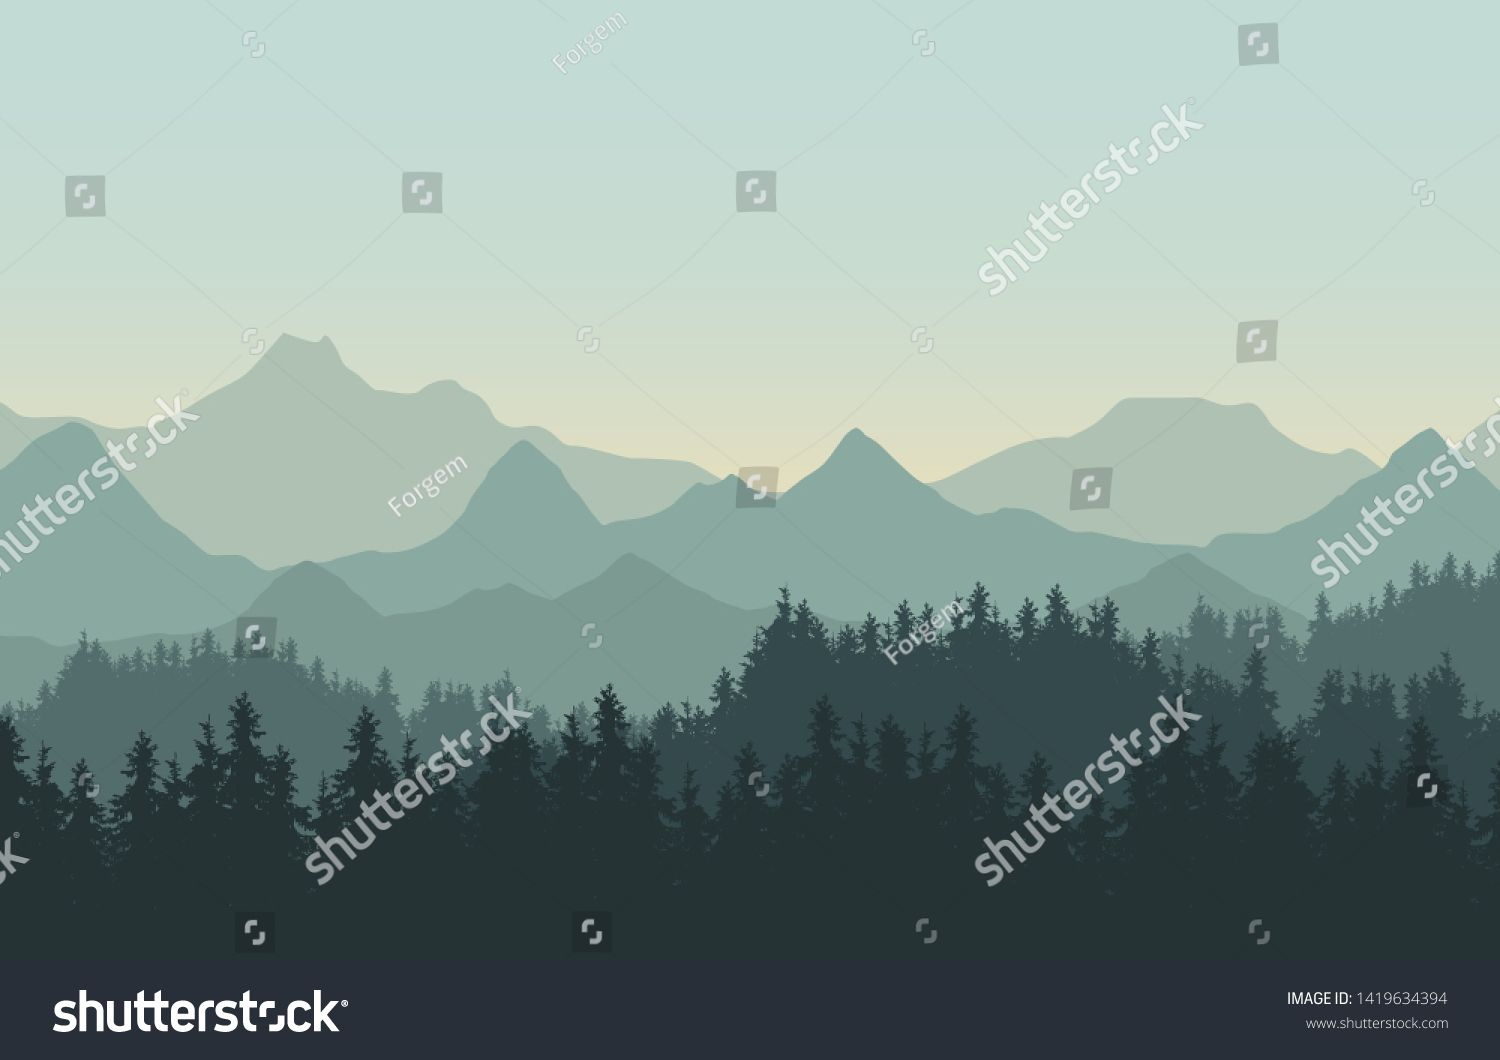 Realistic Illustration Of Mountain Landscape With Hills And Coniferous Forest Under Green Sky Suitable As A H In 2020 Mountain Landscape Illustration Forest Landscape